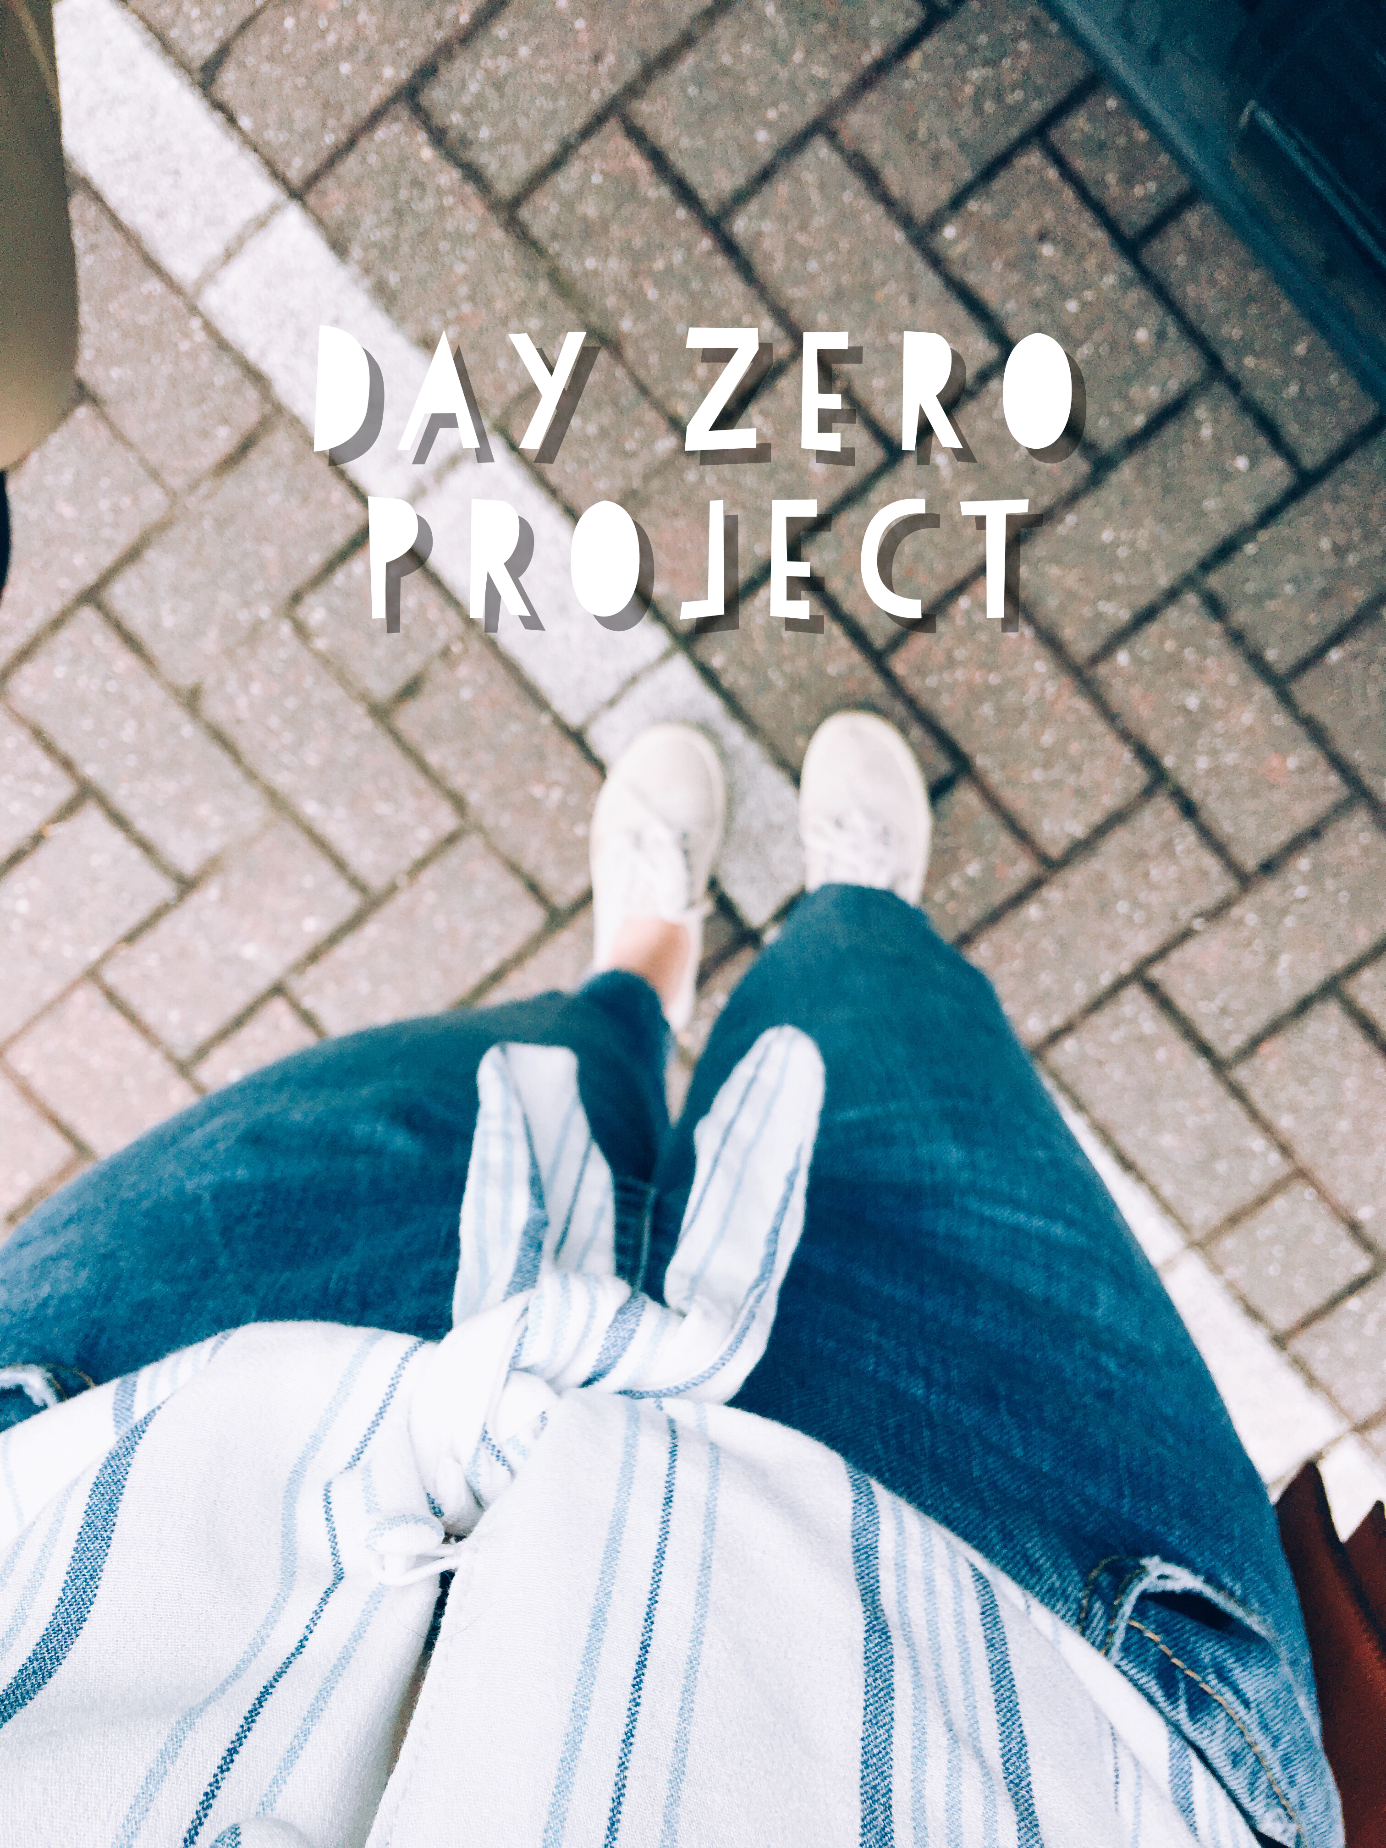 Day zero project | Update 4